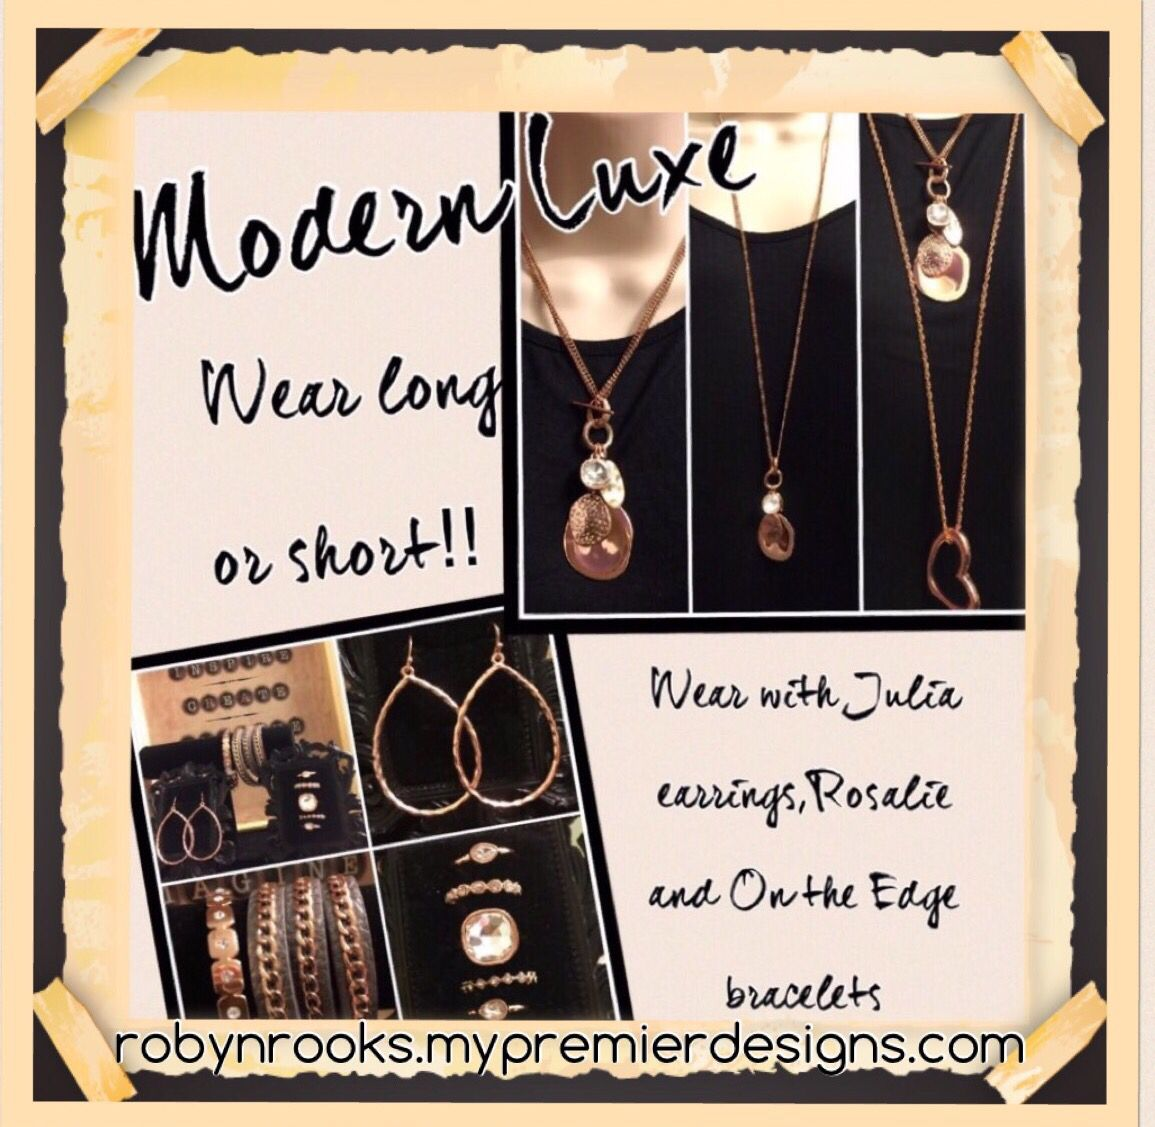 Premier Designs Jewelry 2015 - Find your new favorite jewelry with premier designs